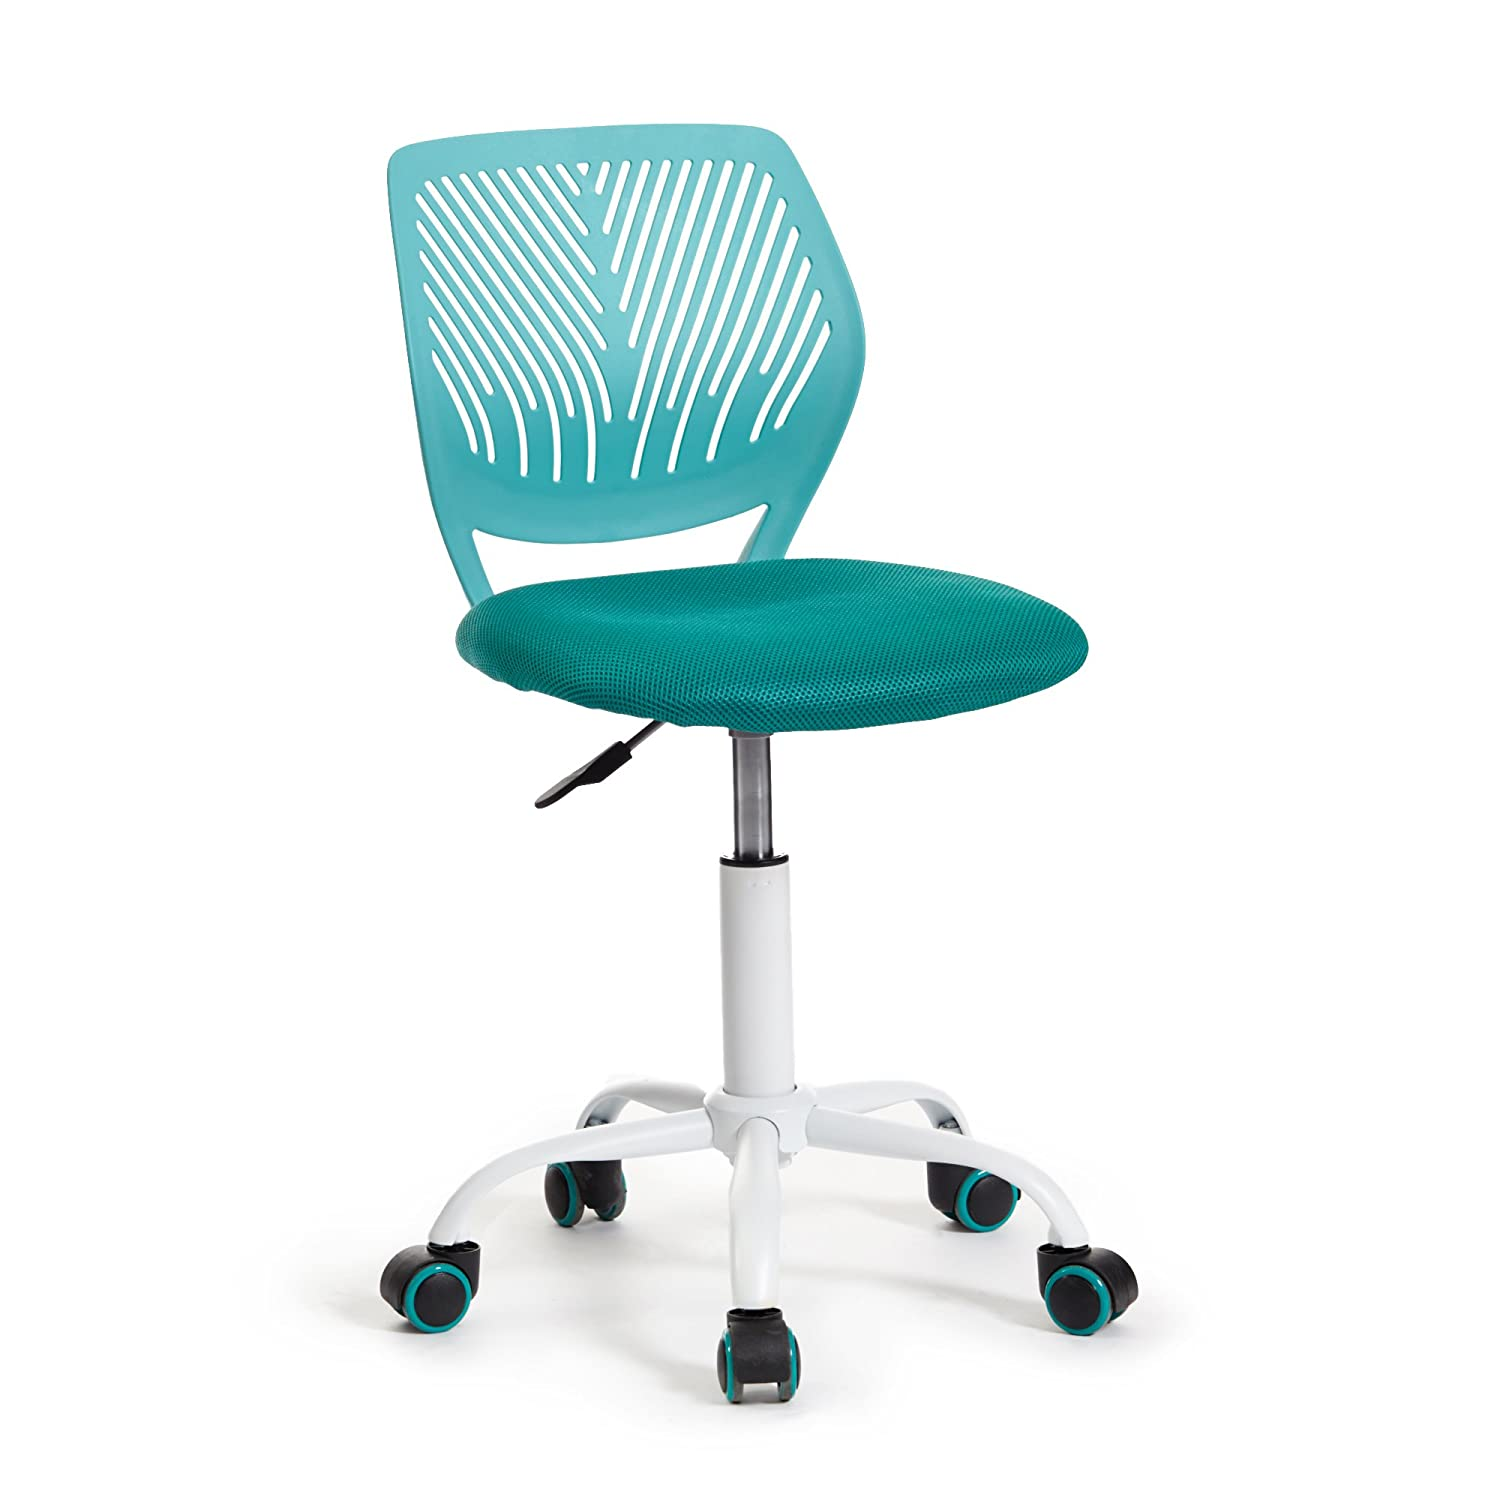 Amazon.com GreenForest Office Task Desk Chair Adjustable Mid Back Home Children Study Chair Turquoise Kitchen u0026 Dining  sc 1 st  Amazon.com & Amazon.com: GreenForest Office Task Desk Chair Adjustable Mid Back ...